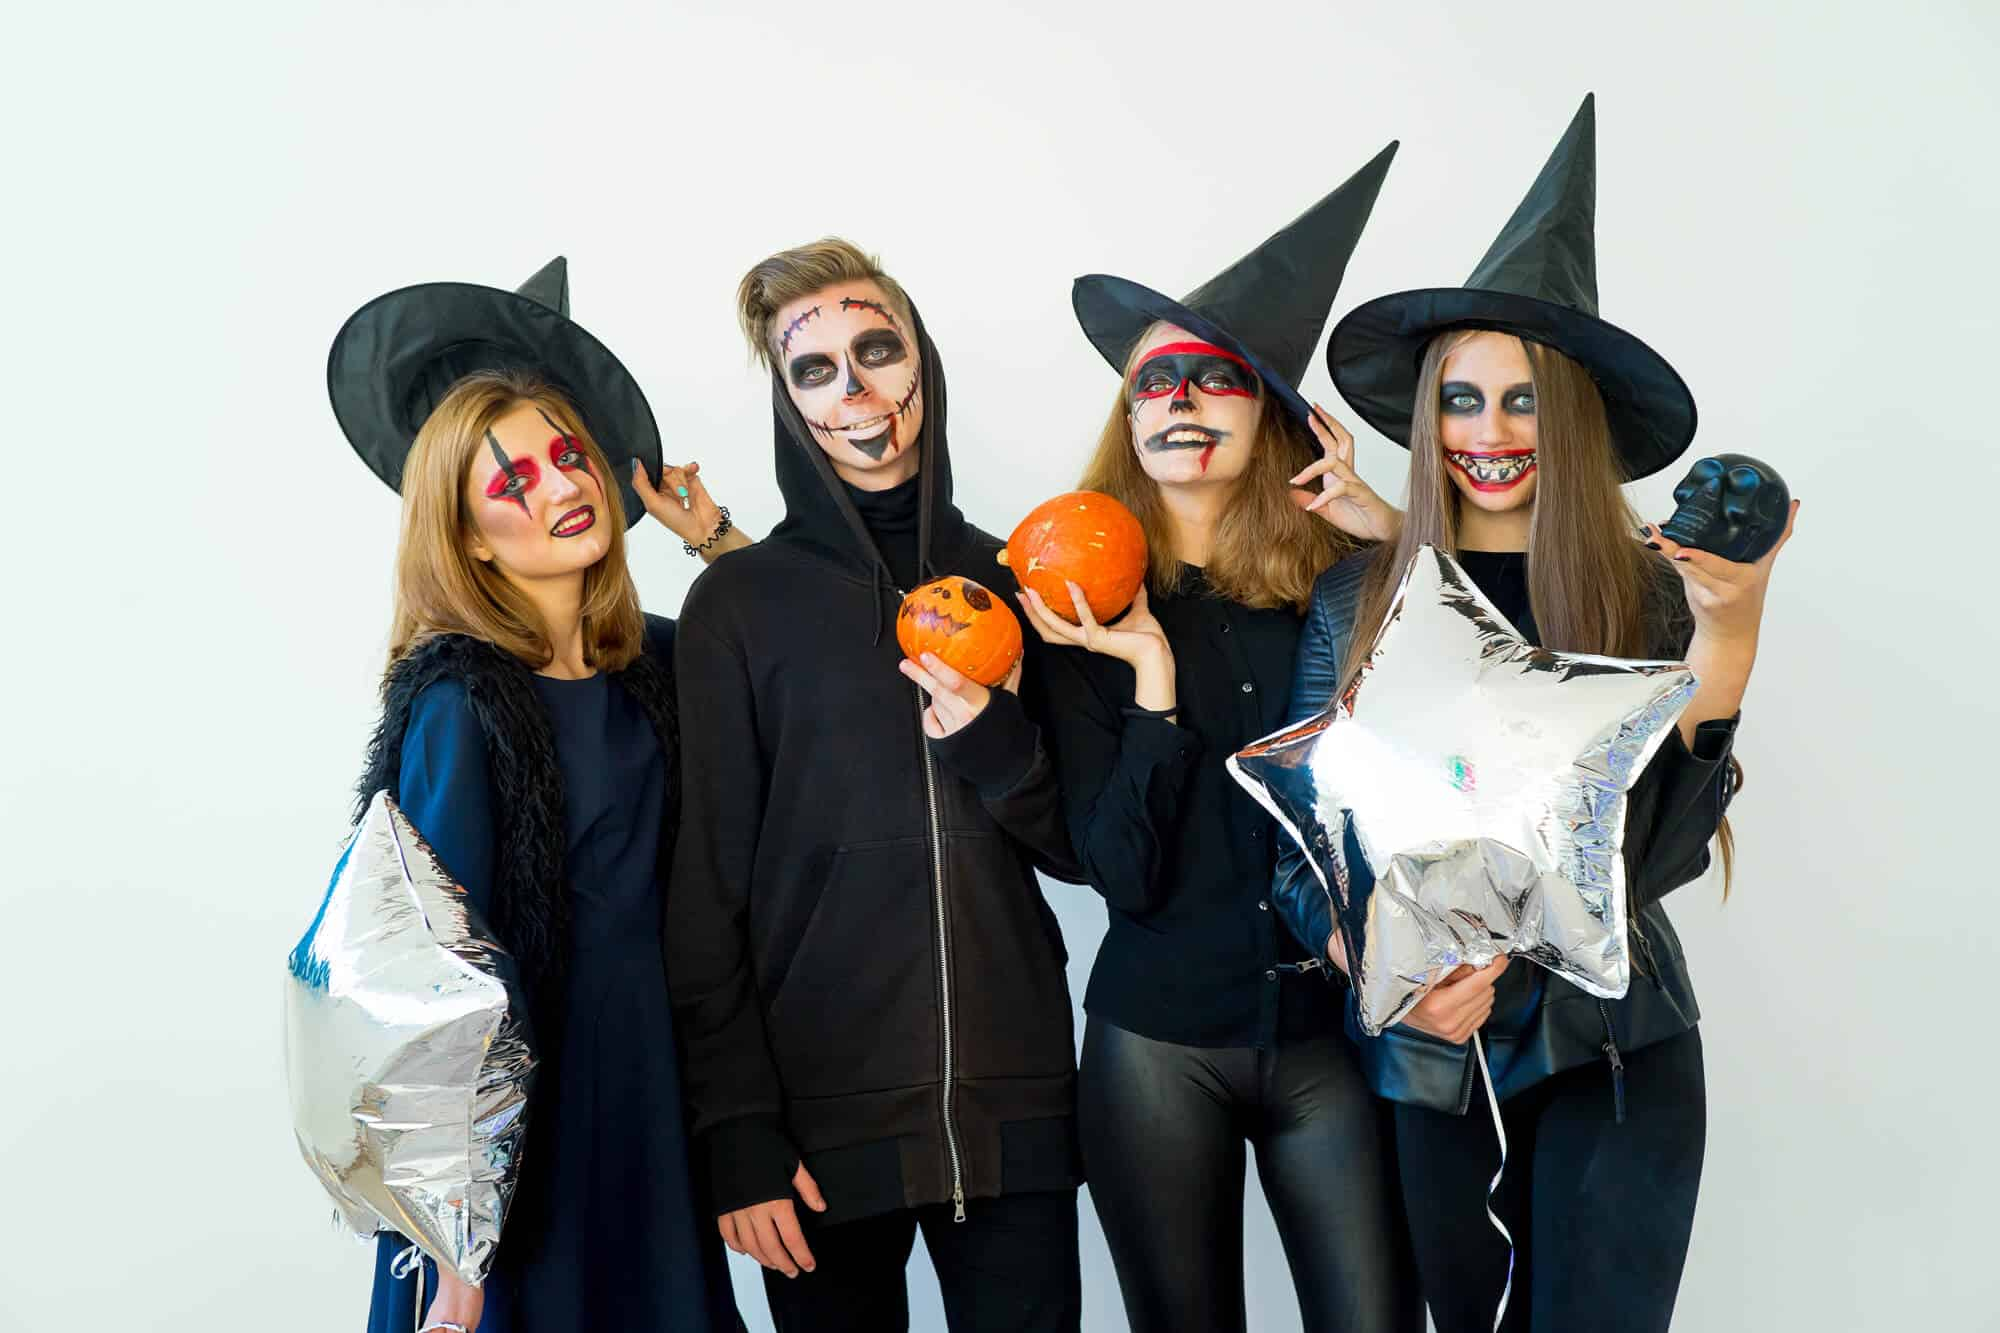 College students wearing last minute Halloween costumes